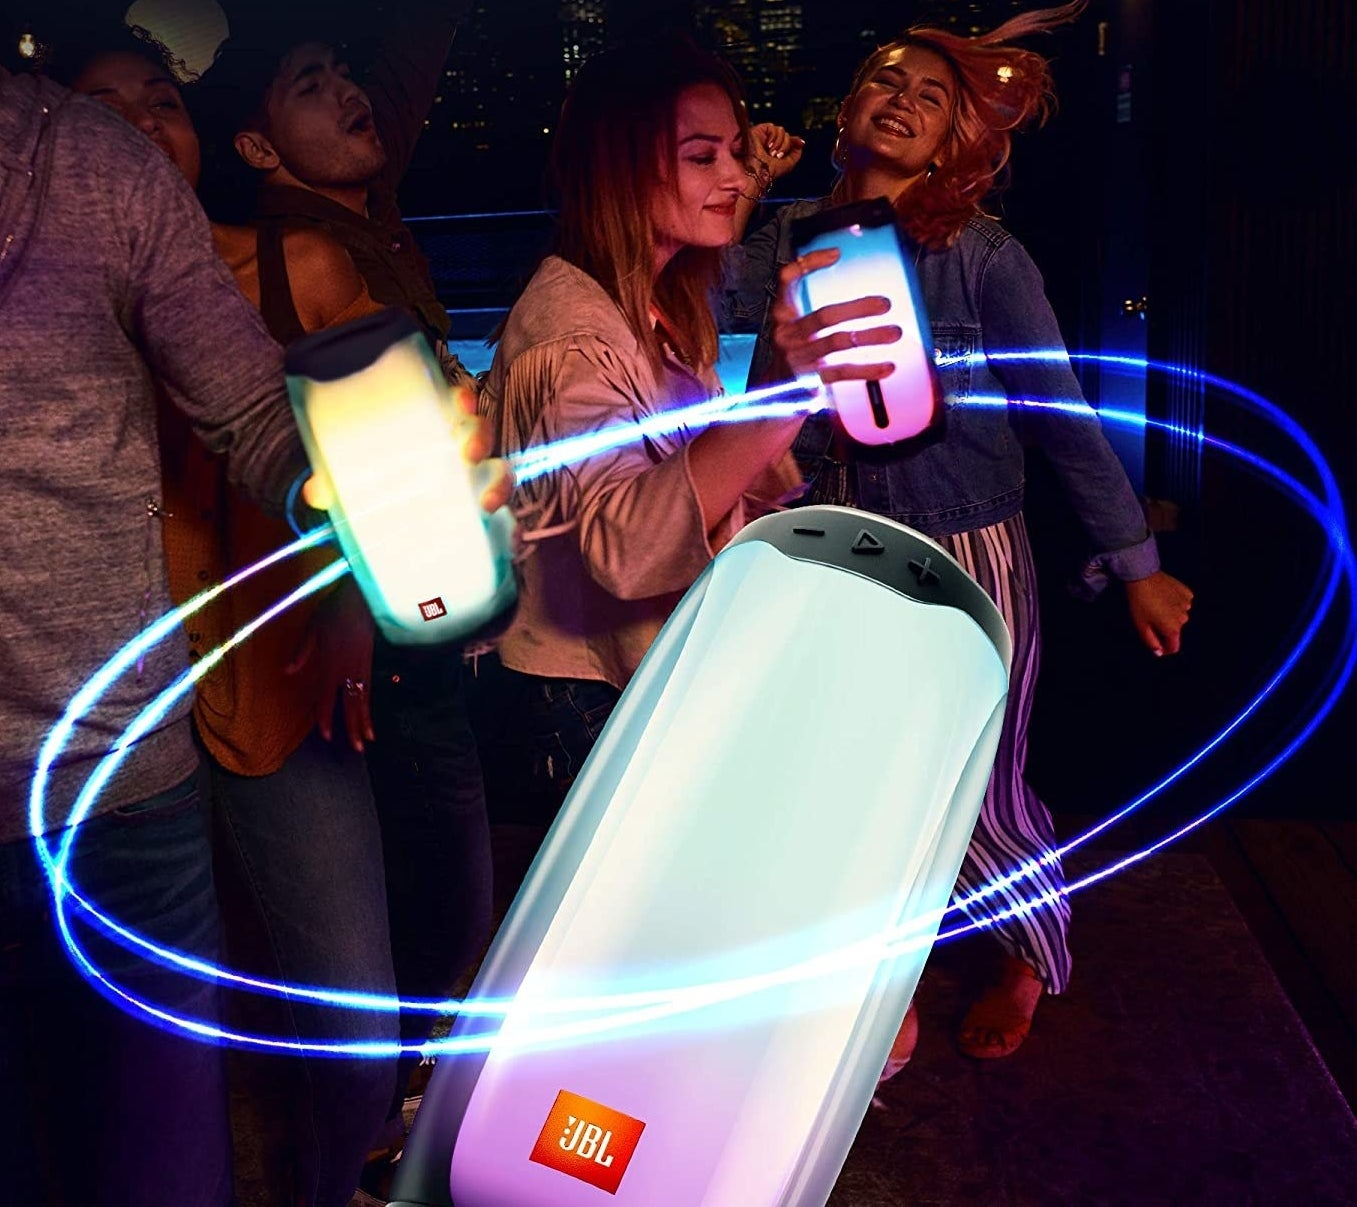 People partying while holding the speakers in their hand.